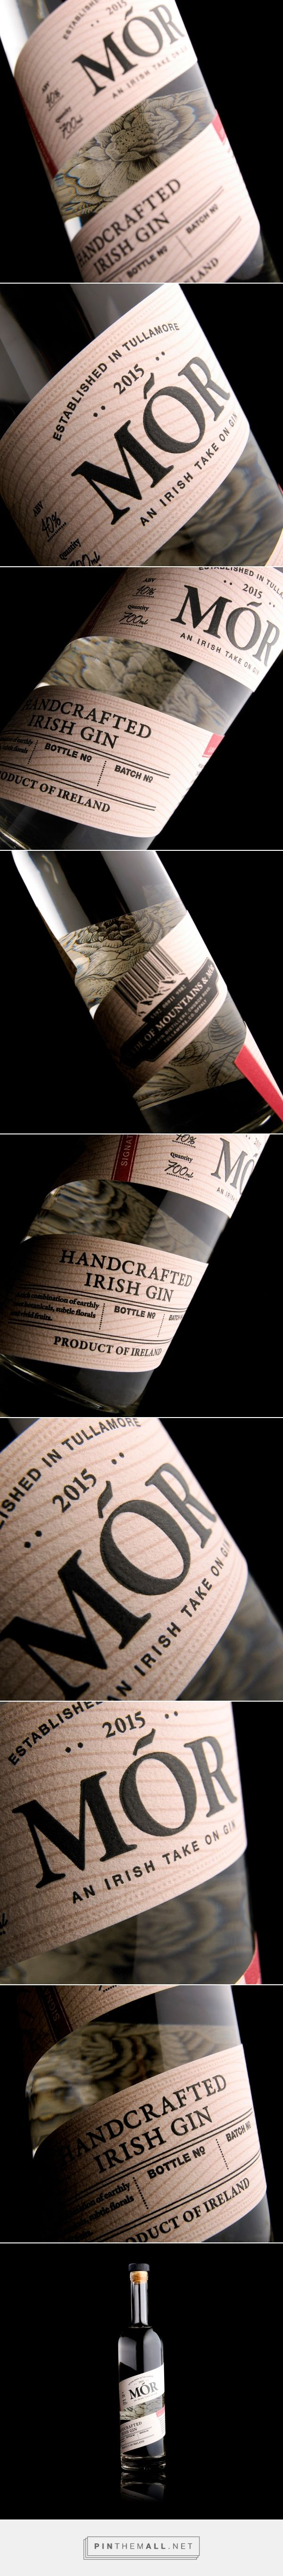 Mór Gin packaging manufactured by Royston Labels - http://www.packagingoftheworld.com/2018/02/mor-gin.html